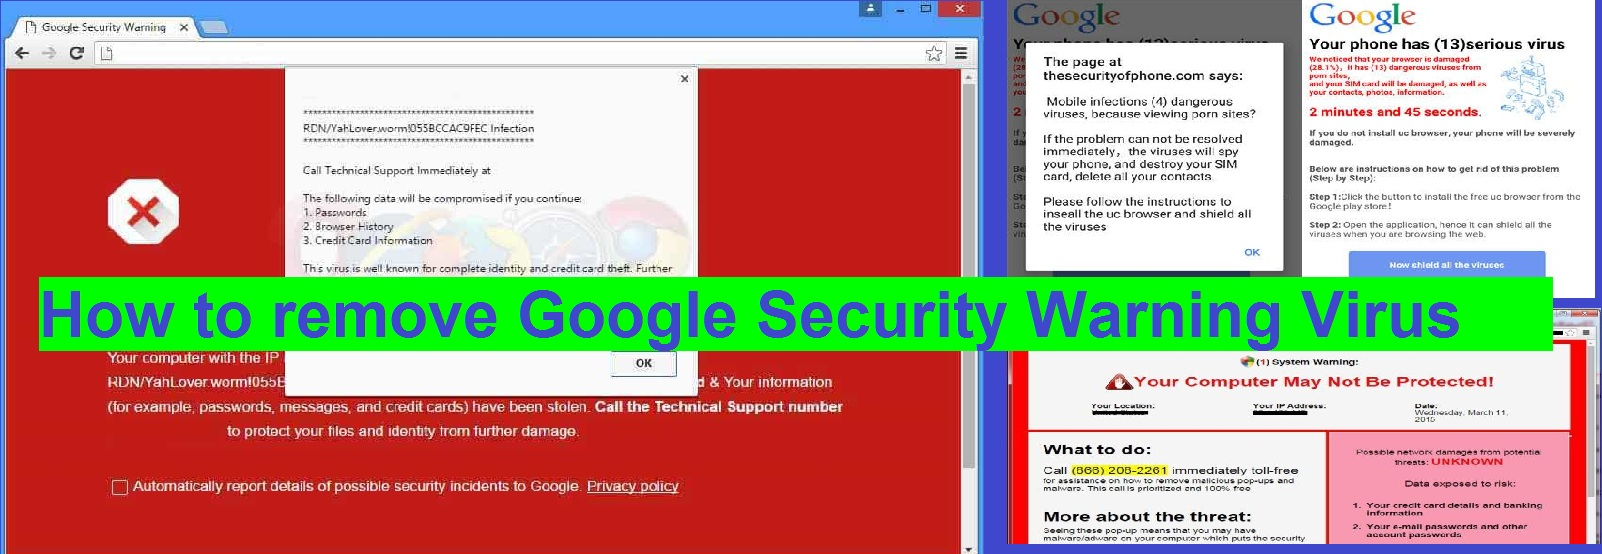 How to Remove Security Warning Popup virus from Windows or Android